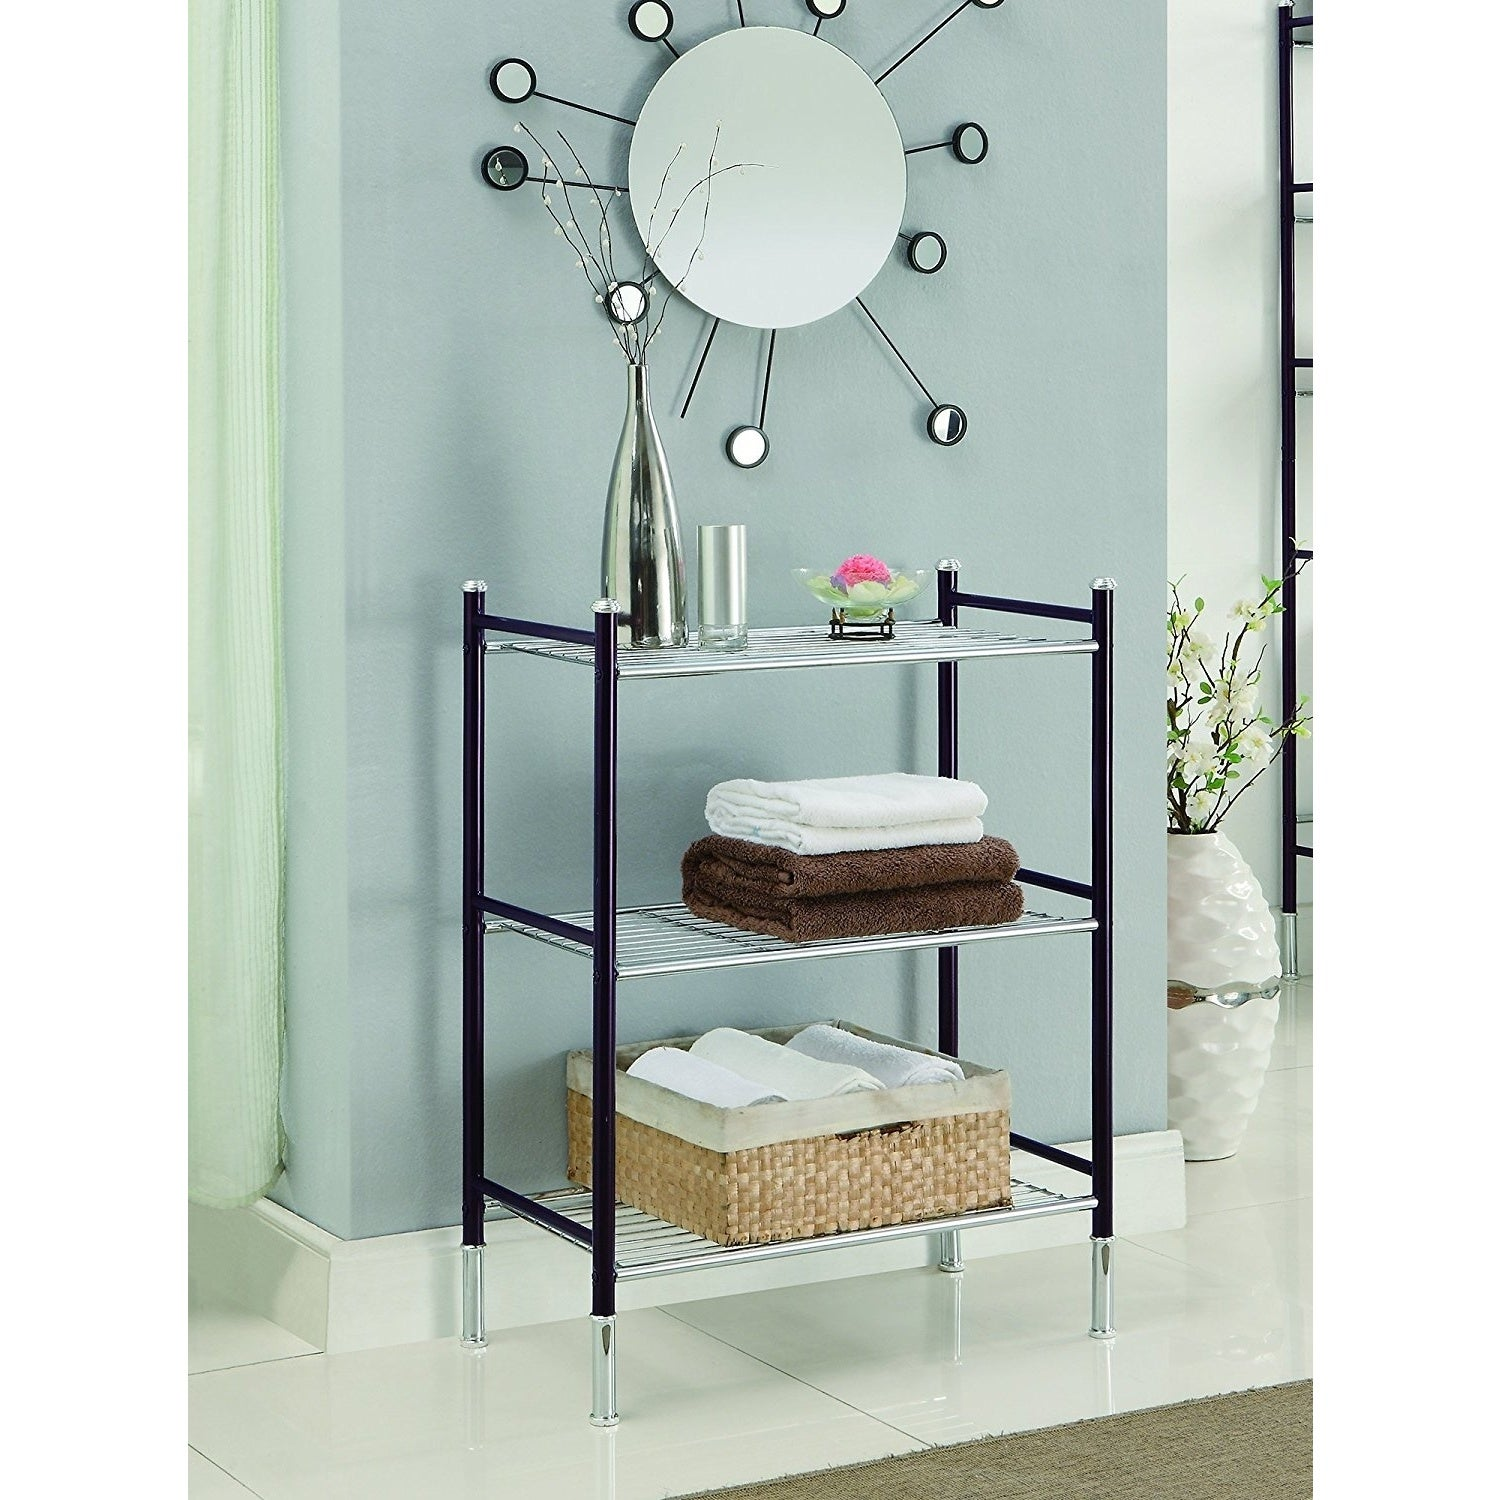 Duplex 3-tier Oil Rubbed Bronze Bathroom Shelf | eBay